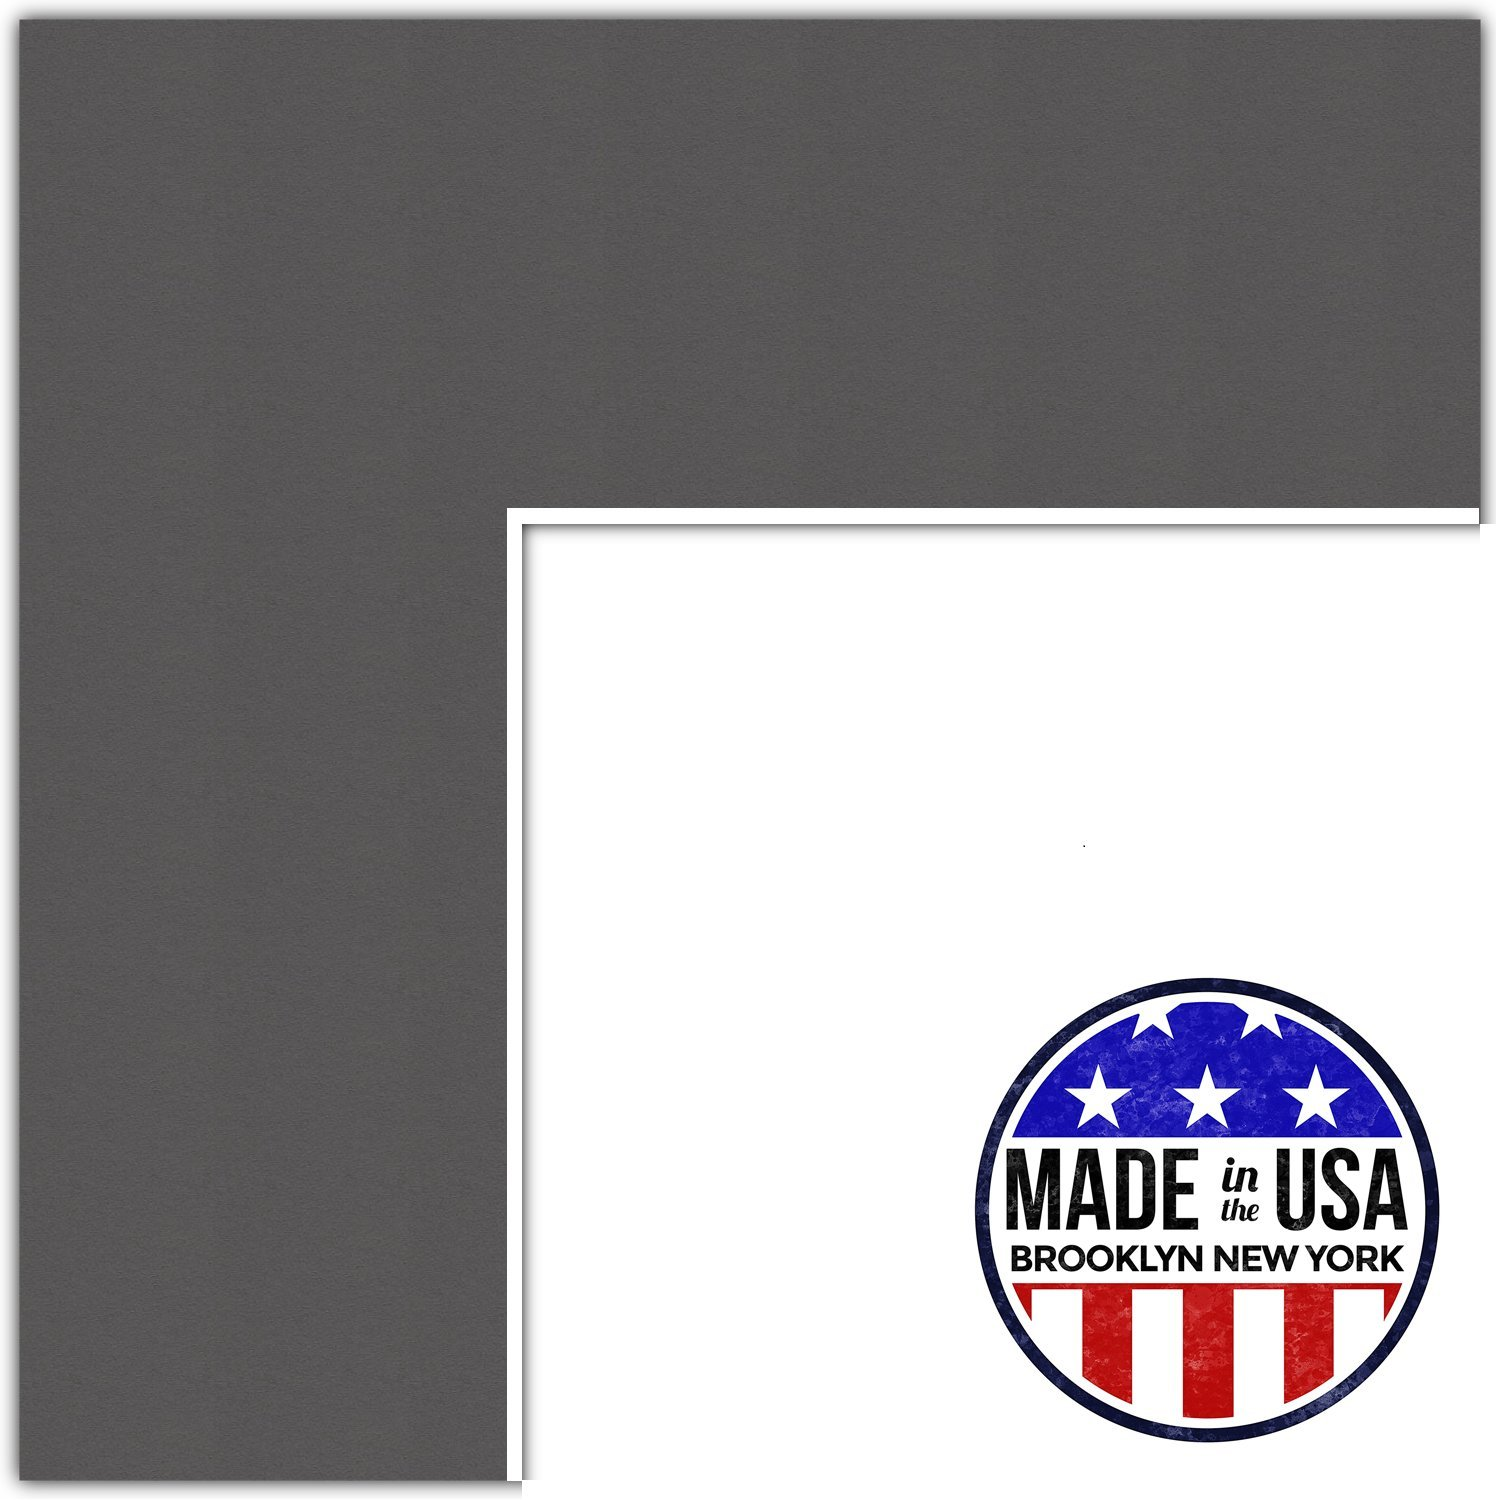 11x17 Cinder / Charcoal Custom Mat for Picture Frame with 7x13 opening size (Mat Only, Frame NOT Included)